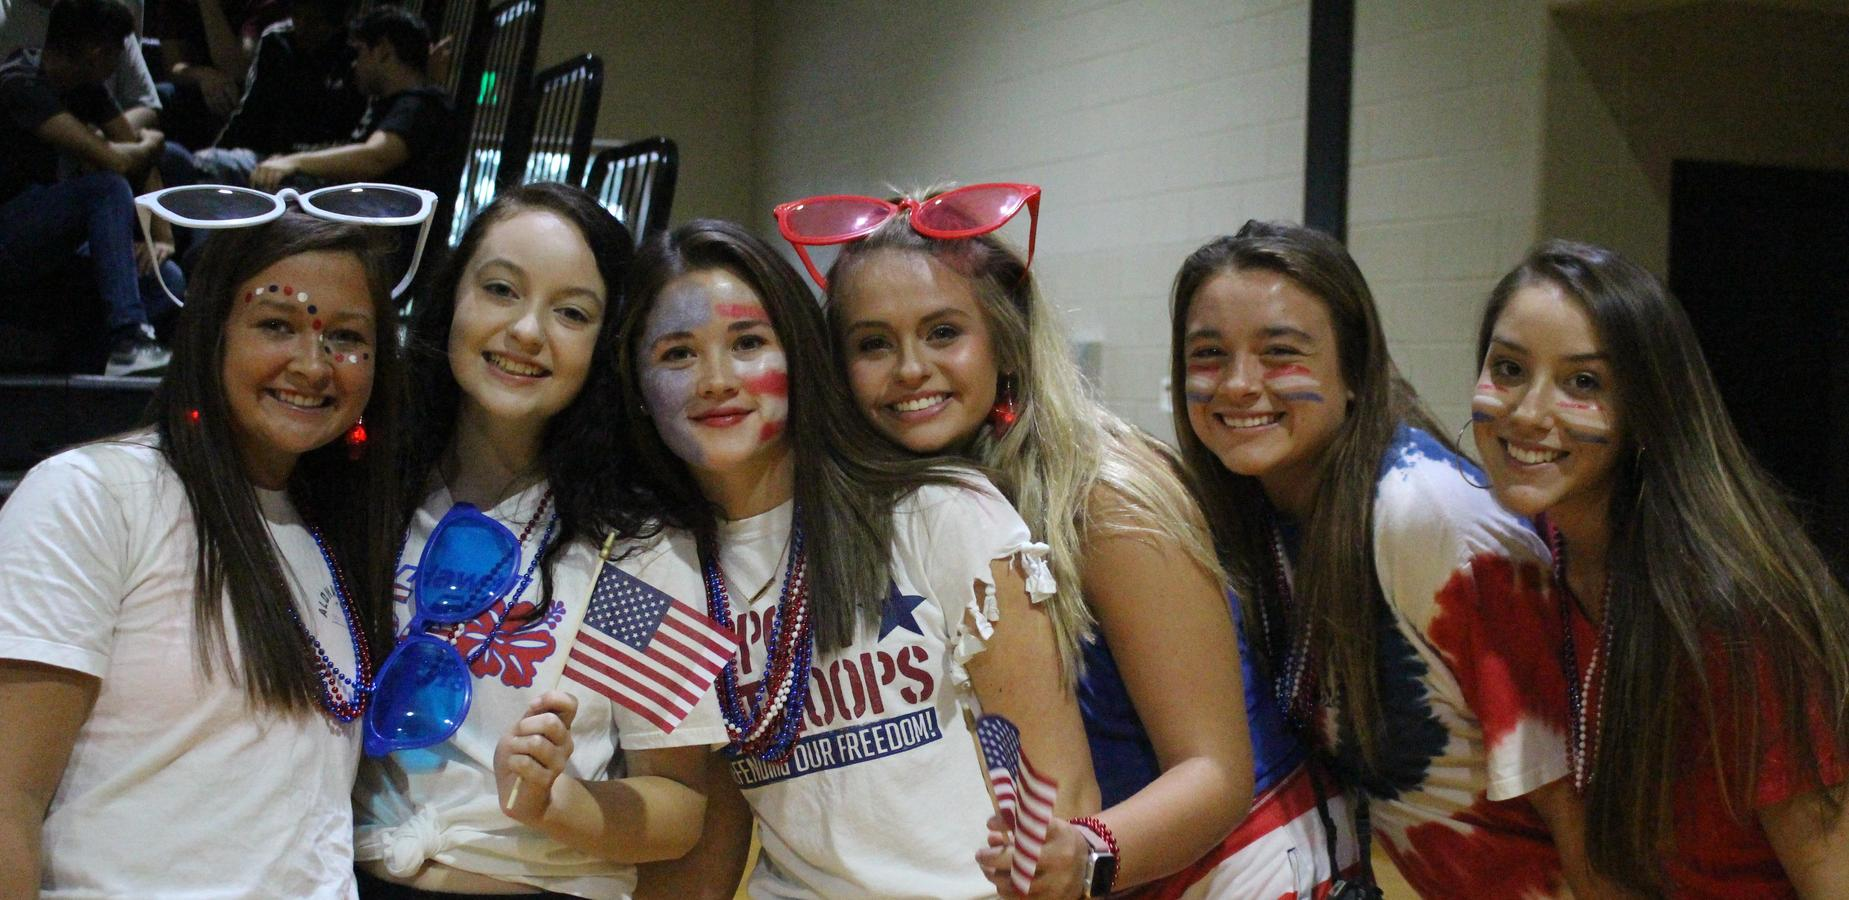 Students dressed in red, white, and blue for American Monday.